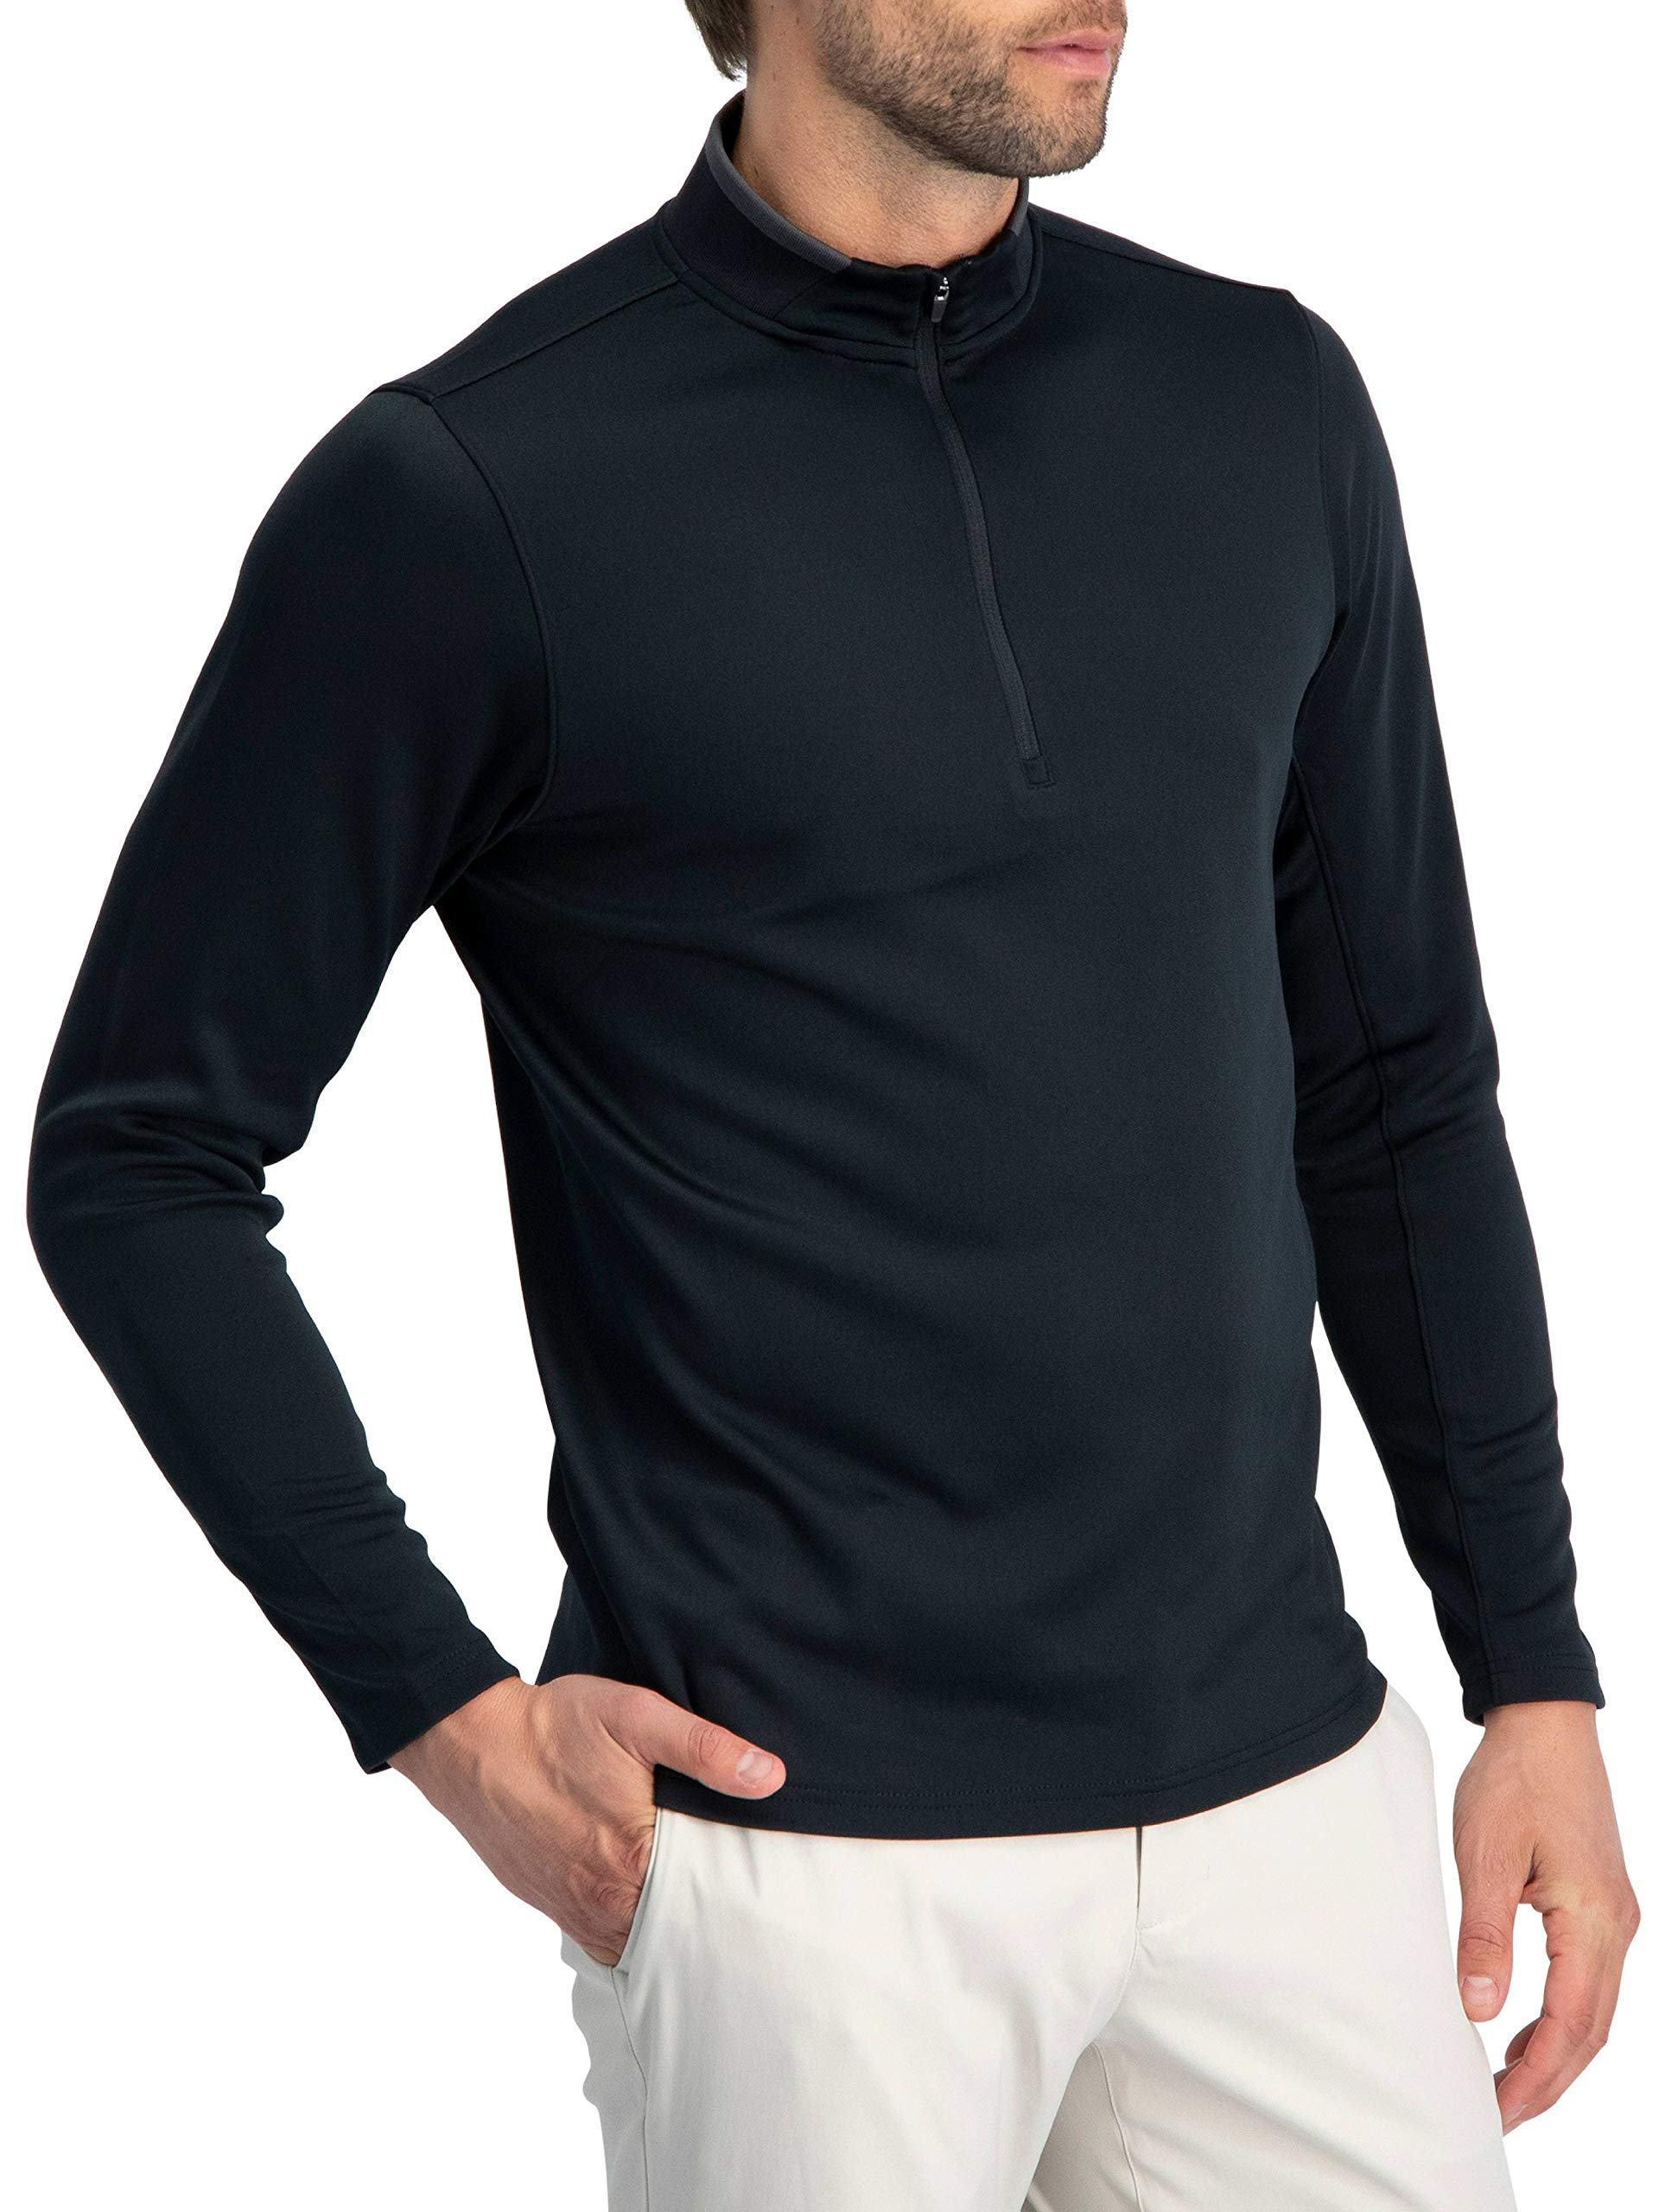 Golf Half Zip Pullover Men - Fleece Sweater Jacket - Mens Dry Fit Golf Shirts Jet Black by Three Sixty Six